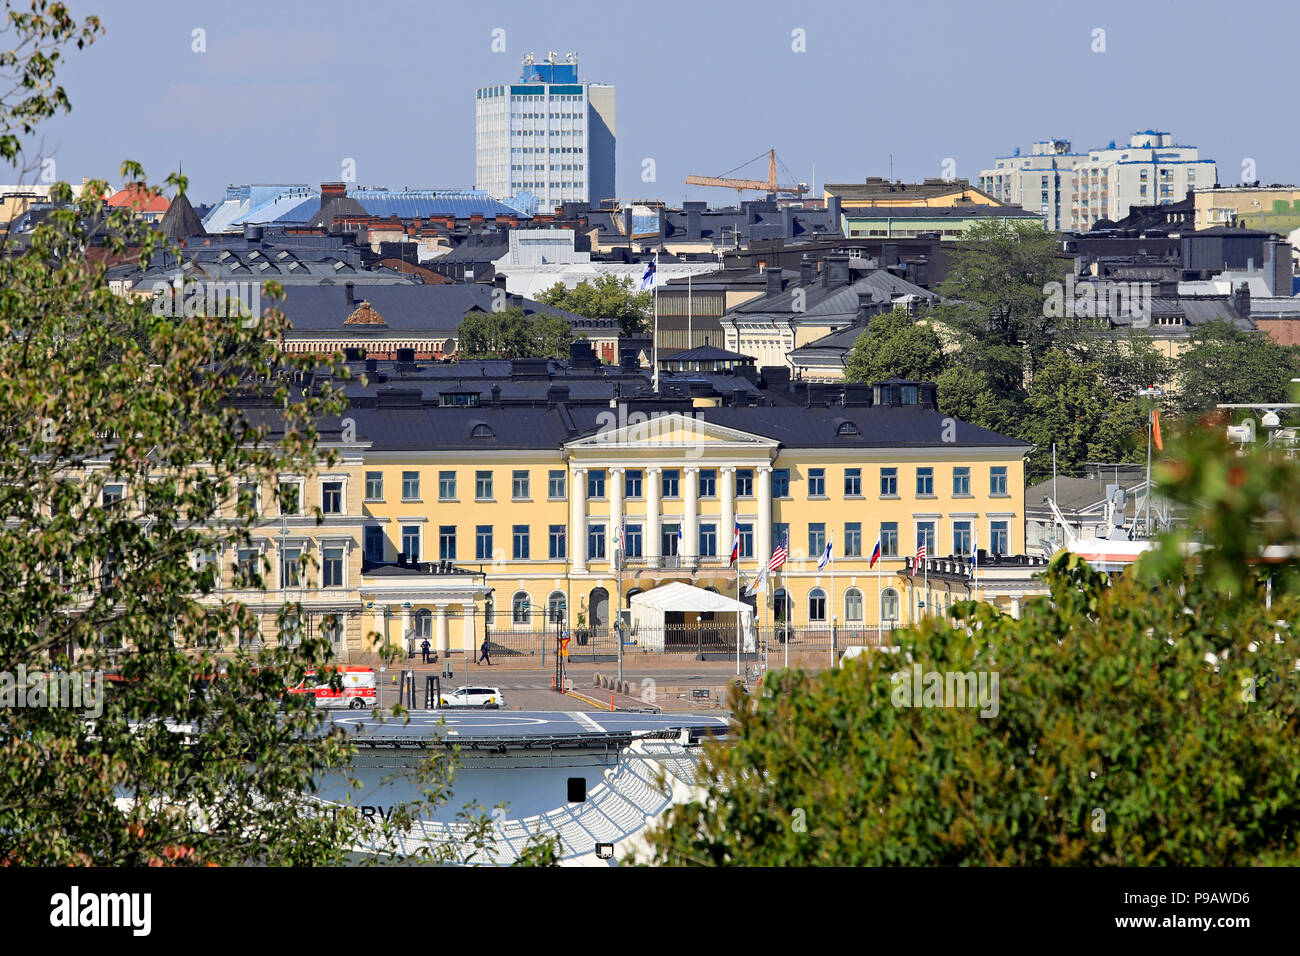 Helsinki, Finland. July 16, 2018. The Presidential Palace in Helsinki seen from Tähtitorninmäki during the US and Russian Presidents' historic Helsinki2018 meeting. Credit: Taina Sohlman/Alamy Live News Stock Photo